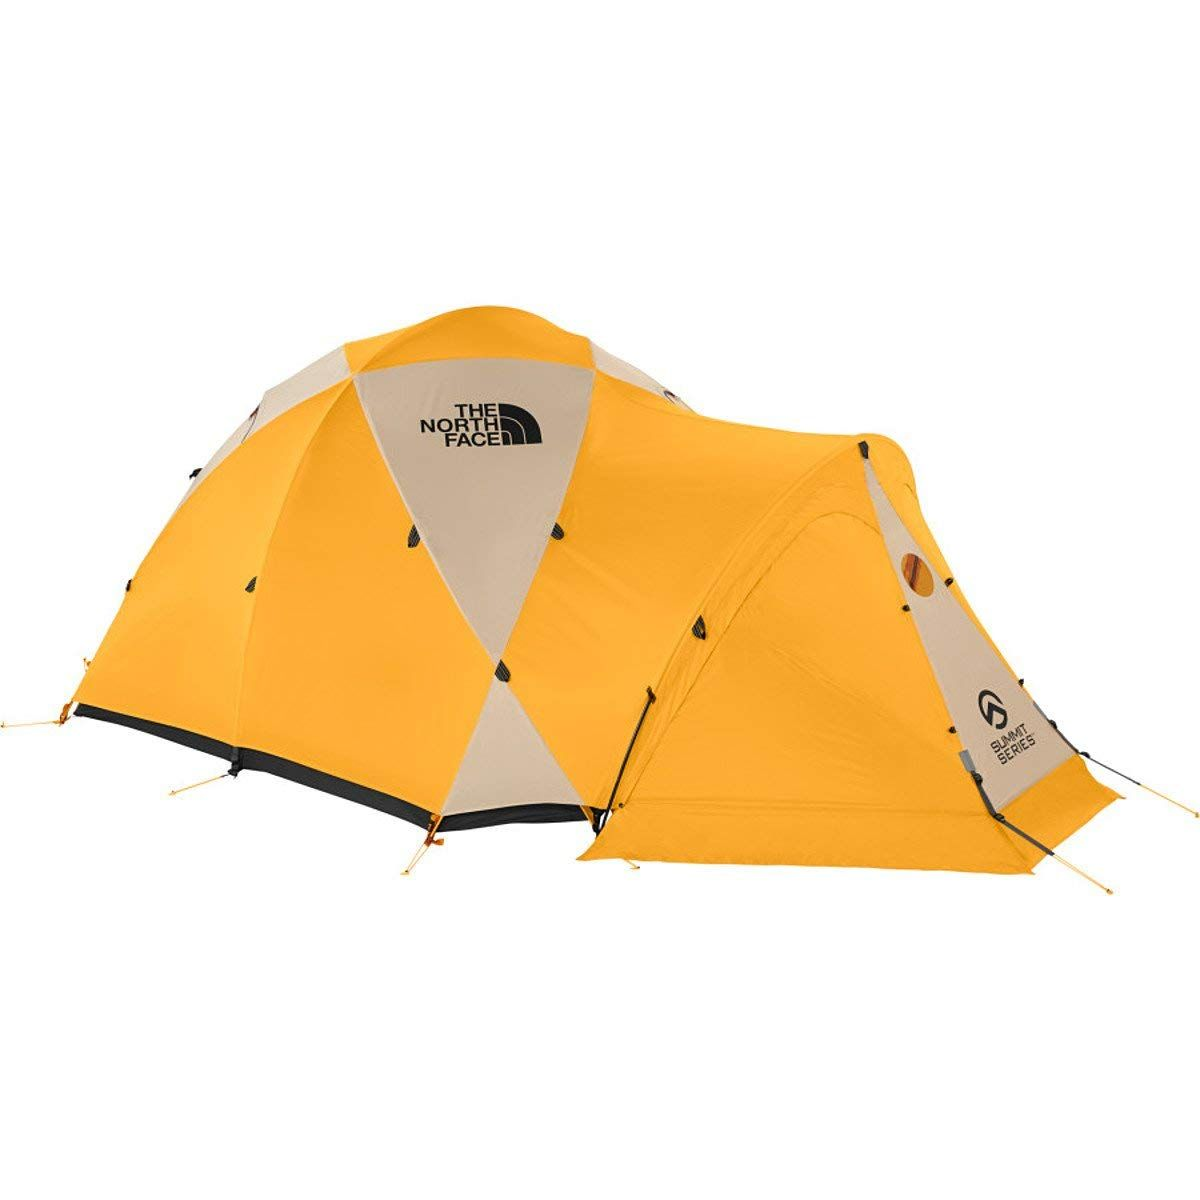 965206be0f98 The North Face Summit Series Bastion 4 -4Person Tent - Summit Gold :  Backpacking Tents